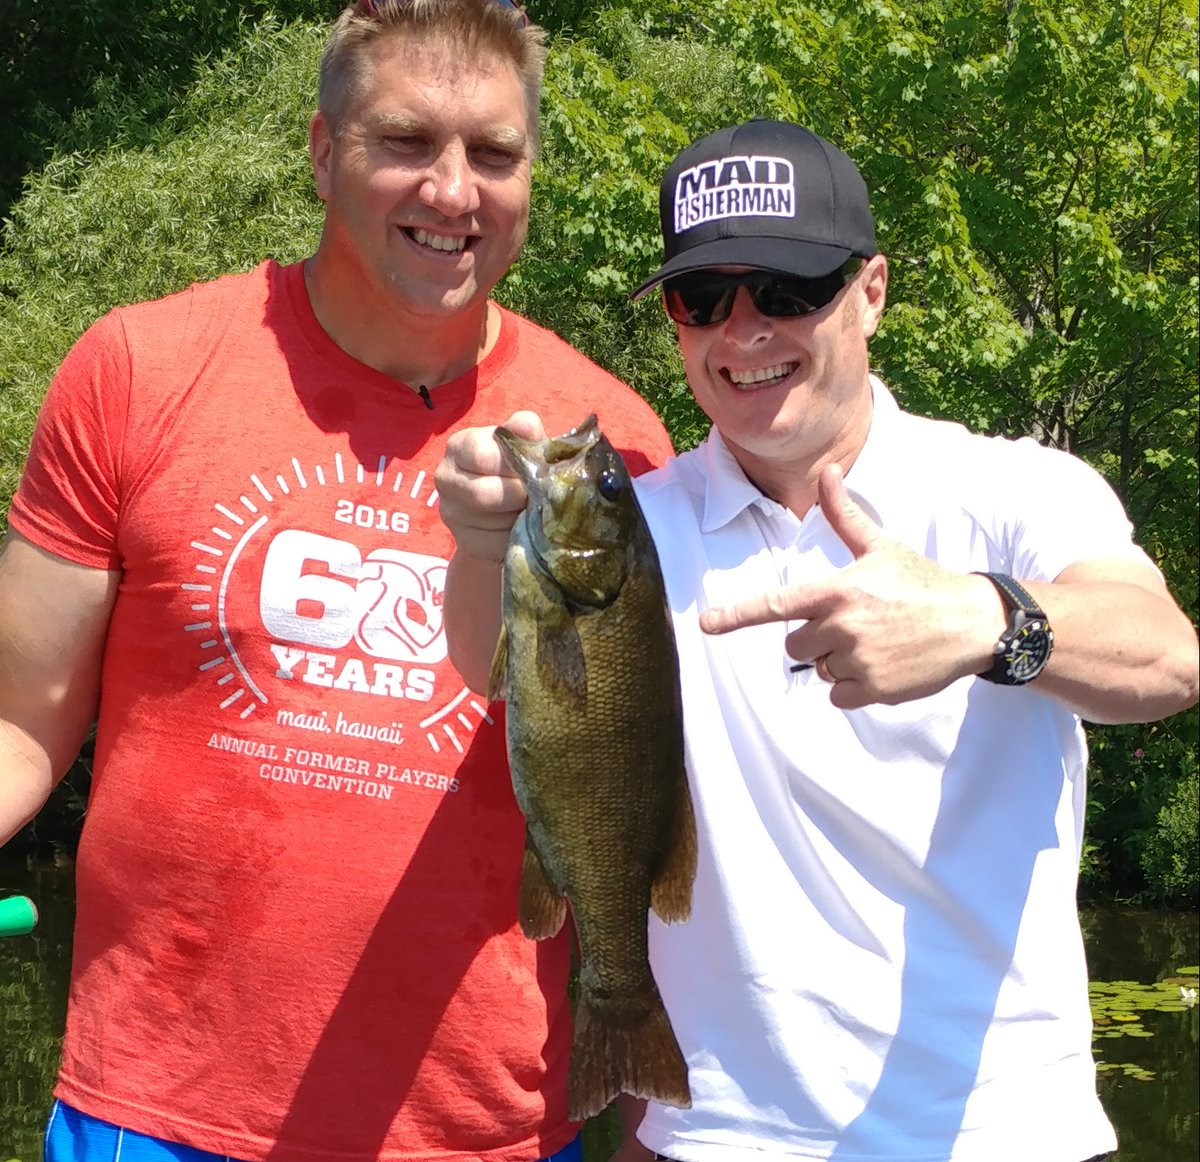 Bass fishing latest news breaking headlines and top for Bass fishing scholarships